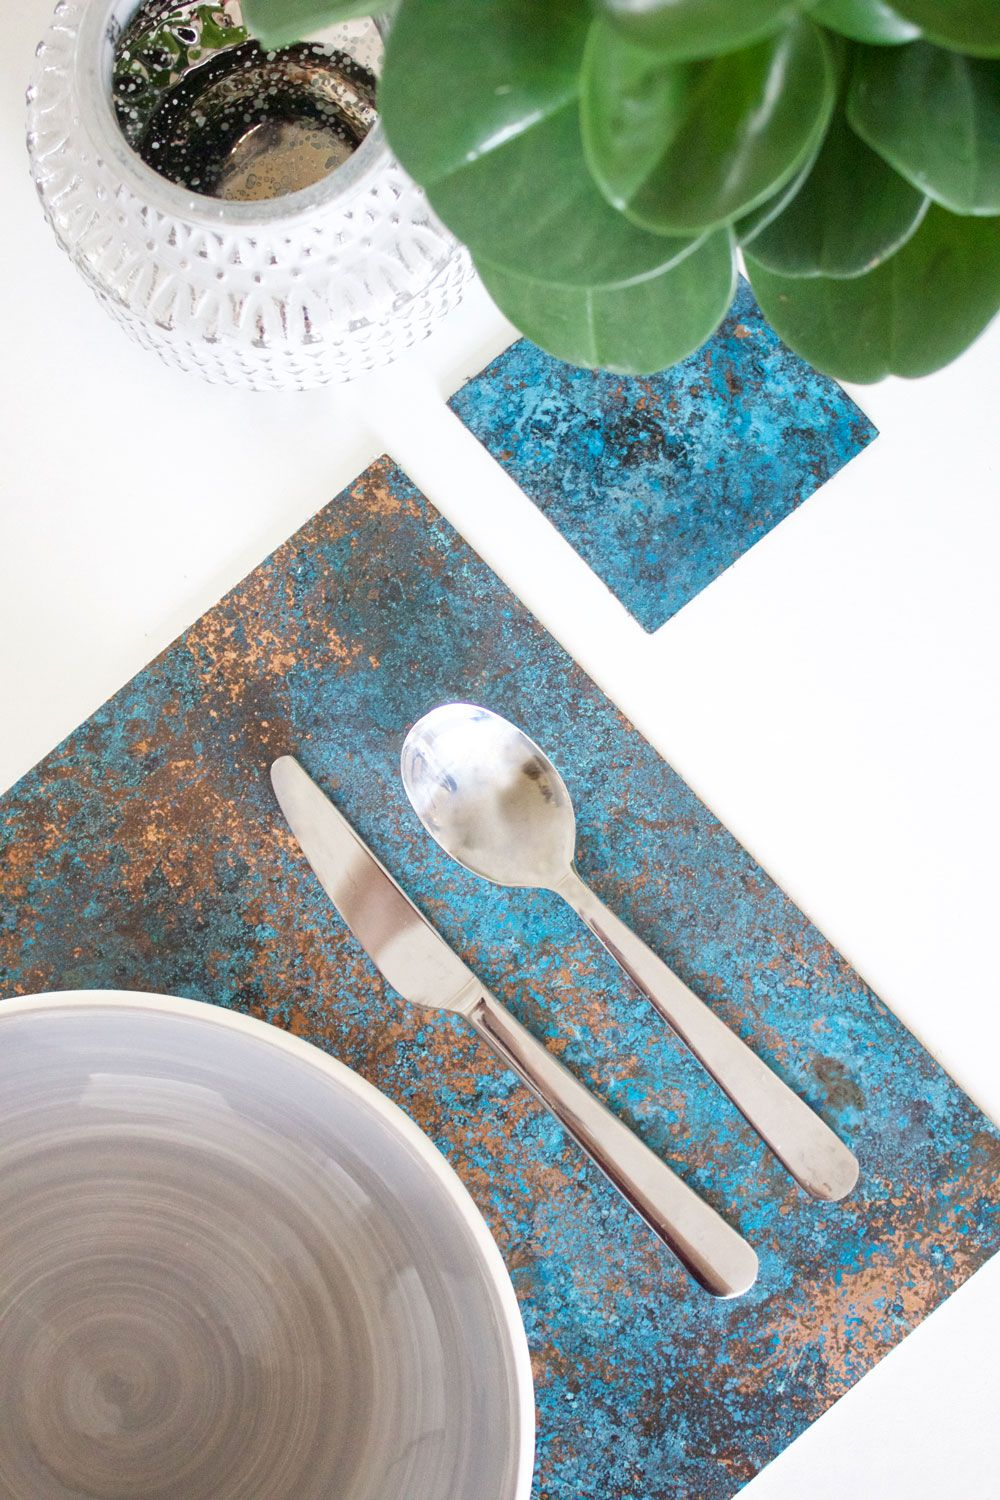 Danielle Folkes Designs Patinated Copper Placemat Things To Sell Copper Junior Product Designer